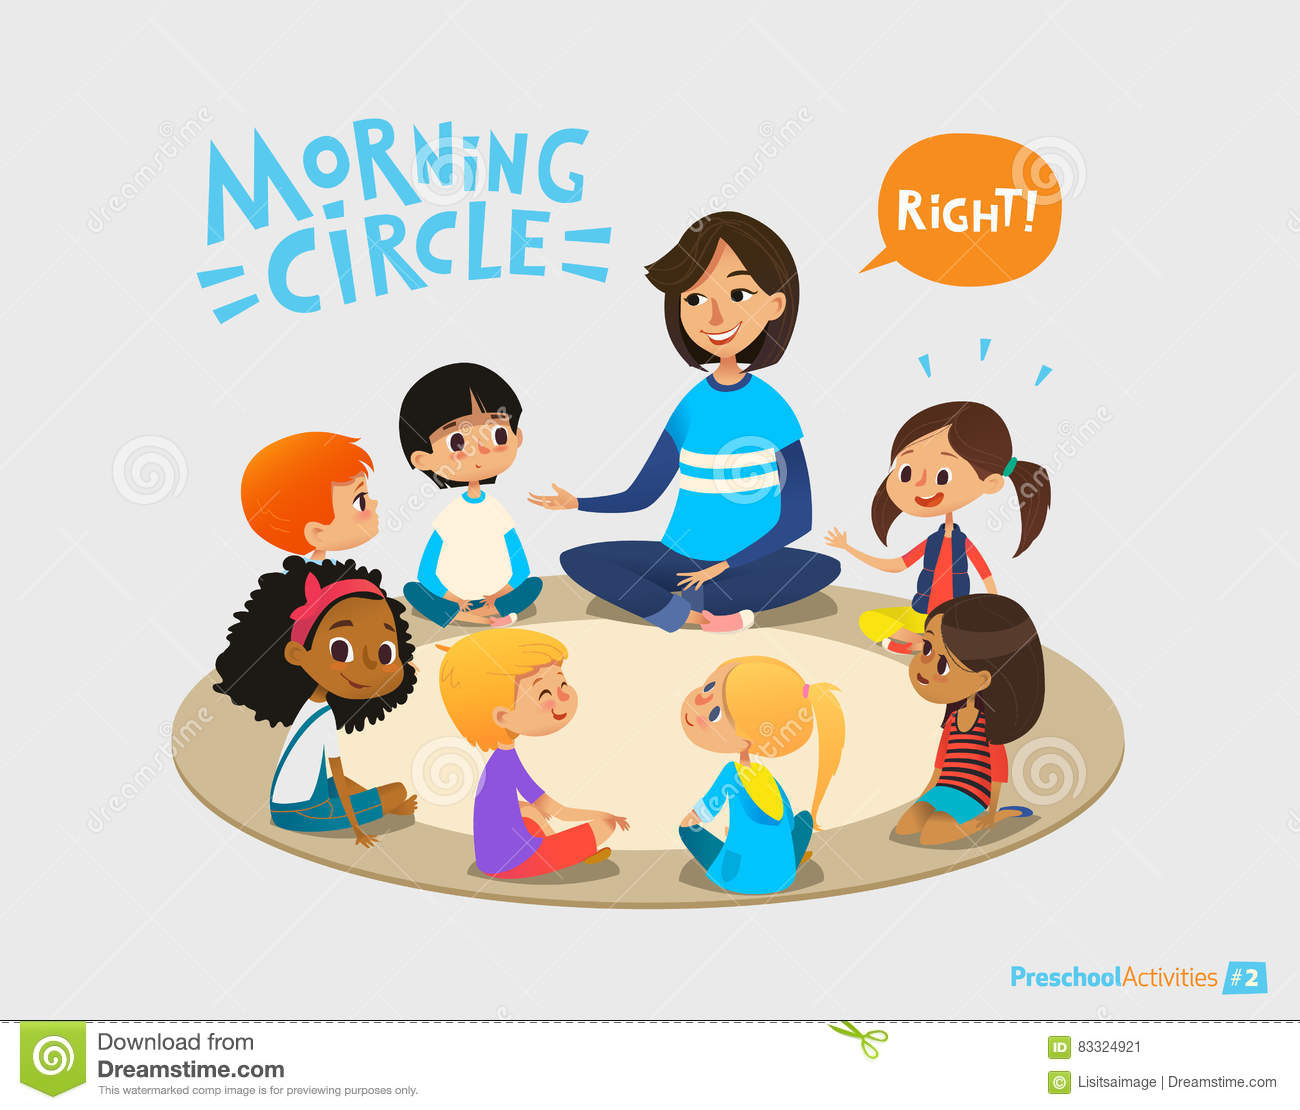 Smiling kindergarten teacher talks to children sitting in circle and asks them questions. Preschool activities and early